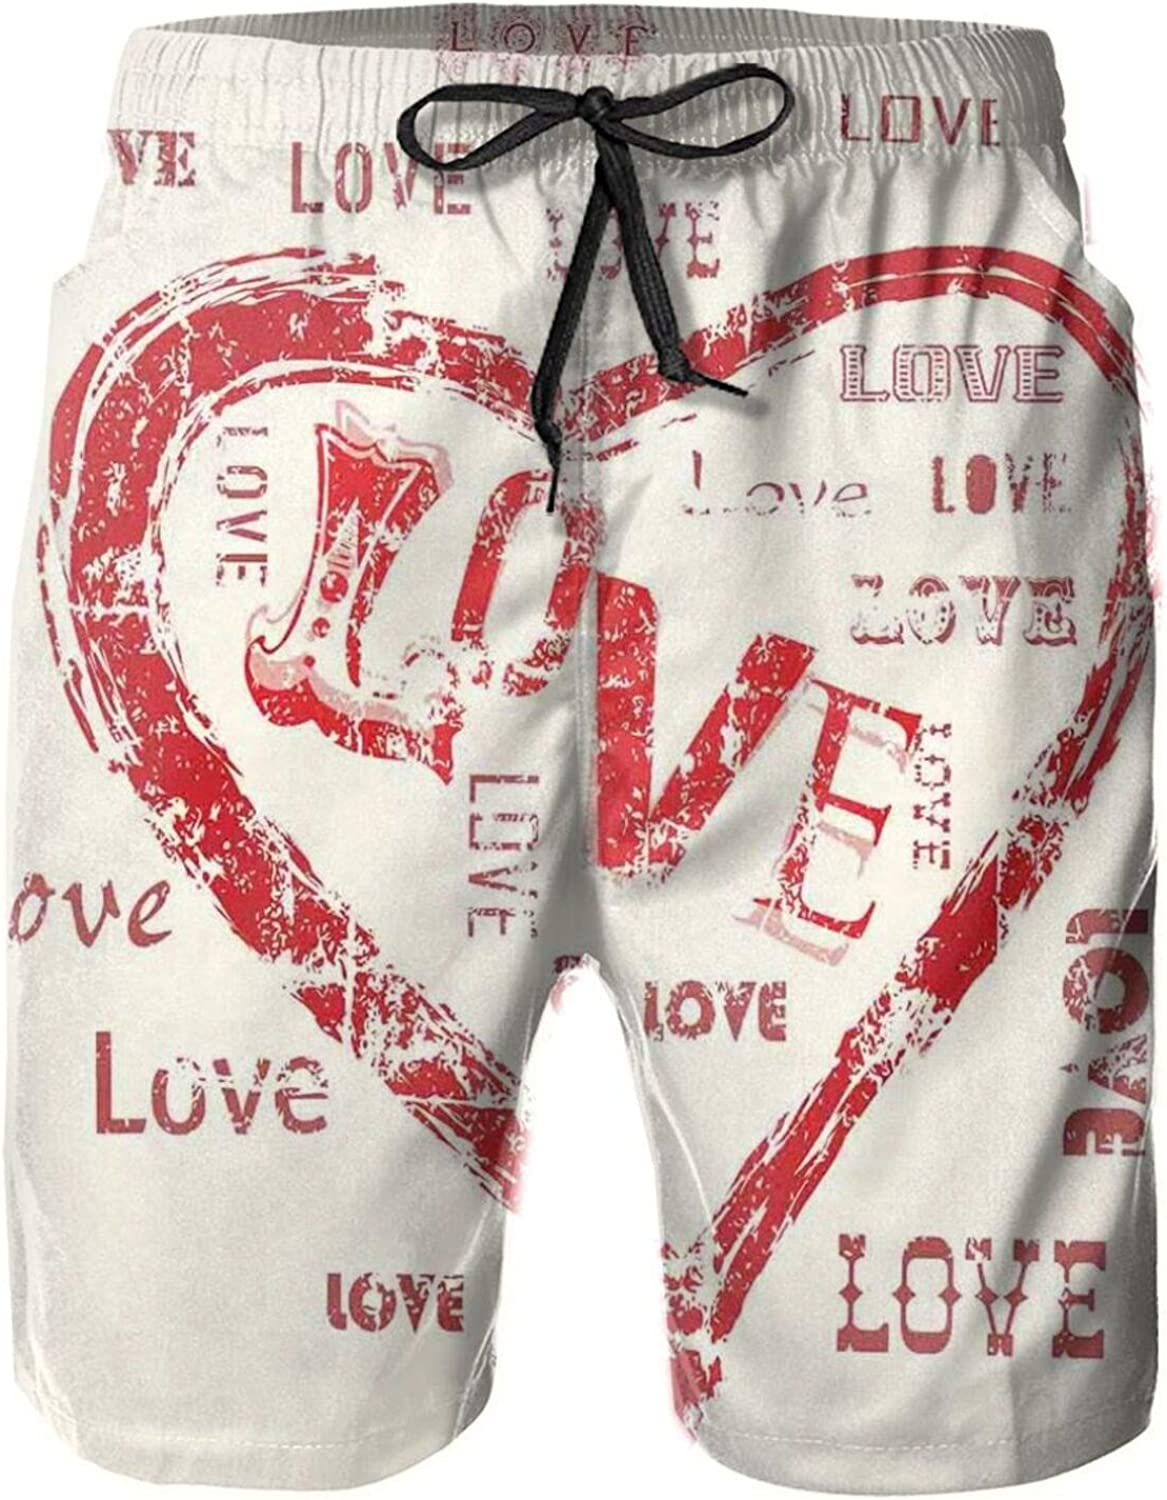 Retro Heart Pattern with Love Calligraphy Passionate Emotions Romantic Pattern Mens Swim Trucks Shorts with Mesh Lining,M